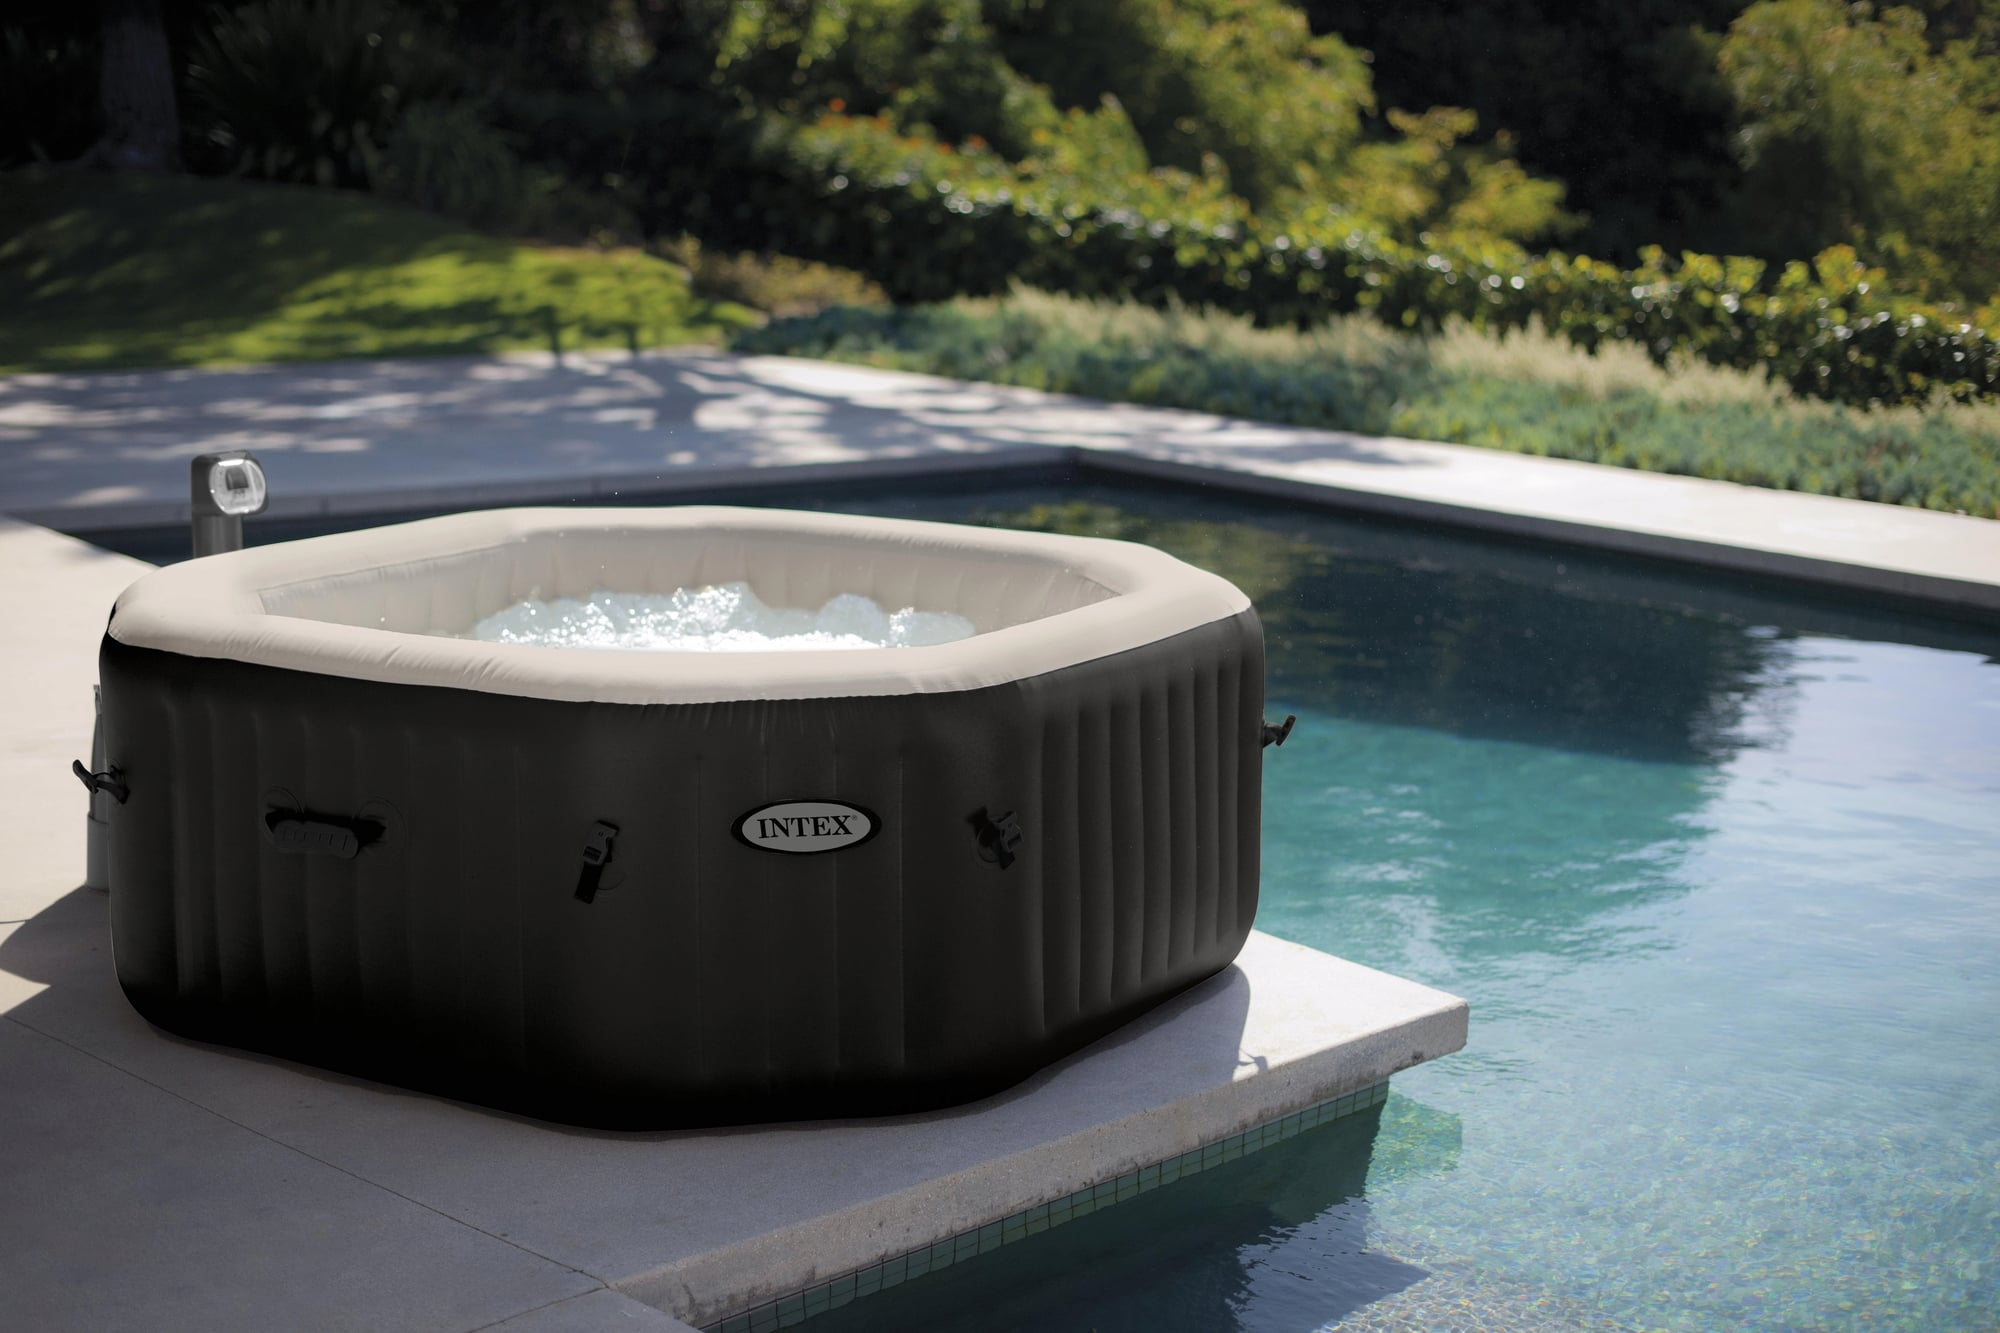 Jacuzzi Pool Abdeckung Whirlpool Pure Spa Bubble Jet Octagonal